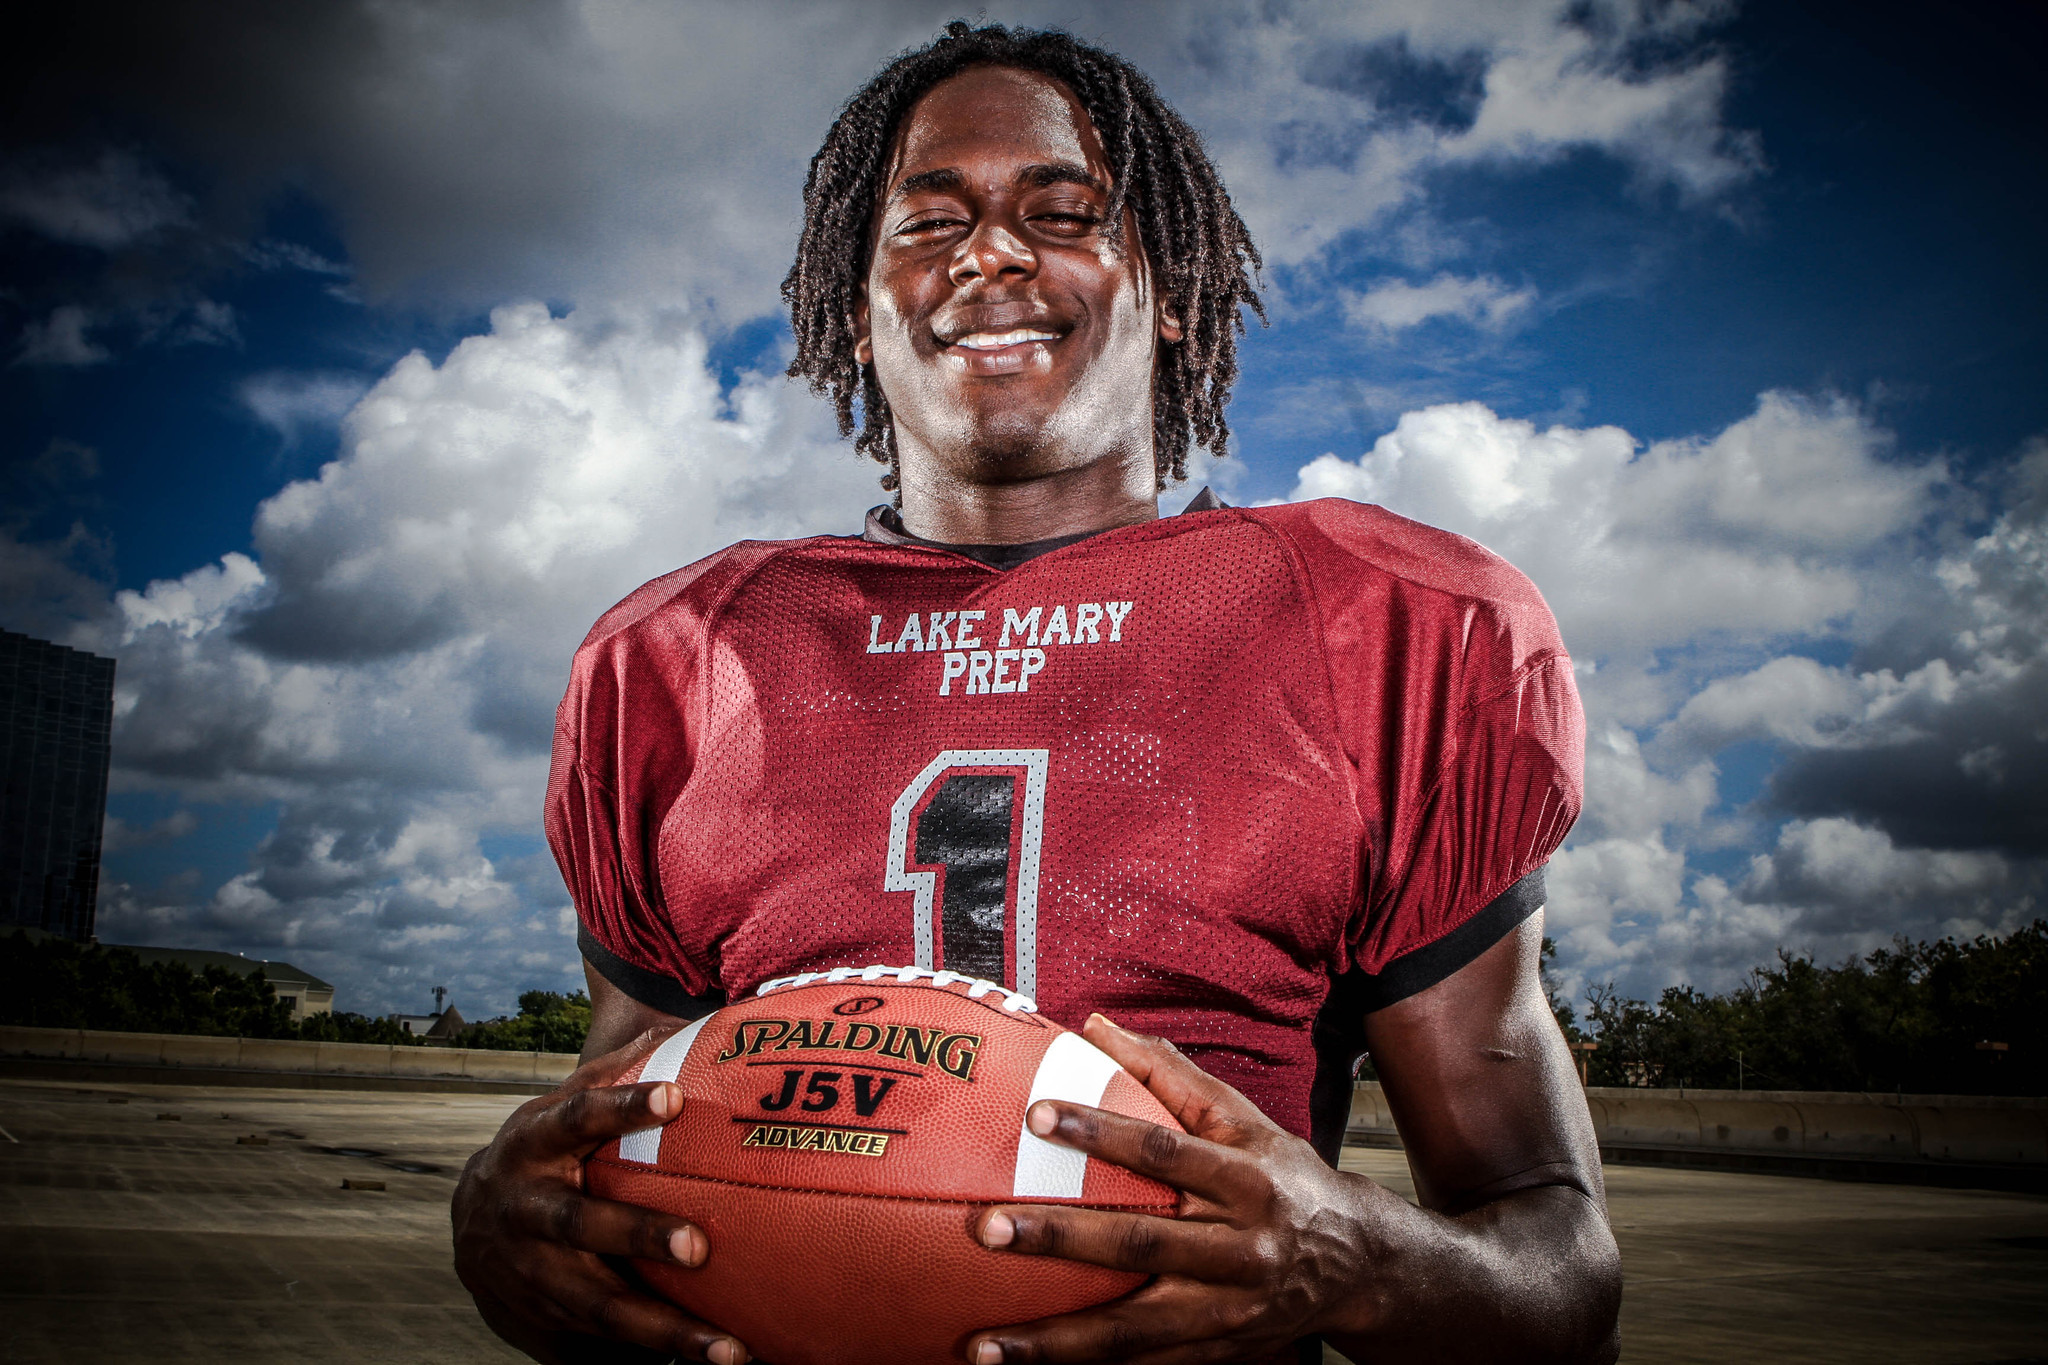 Jeremiah Sams of Lake Mary Prep High School poses for portraits during the Orlando Sentinel Varsity Media Day in Orlando, Fla. on Saturday, August 18, 2012.